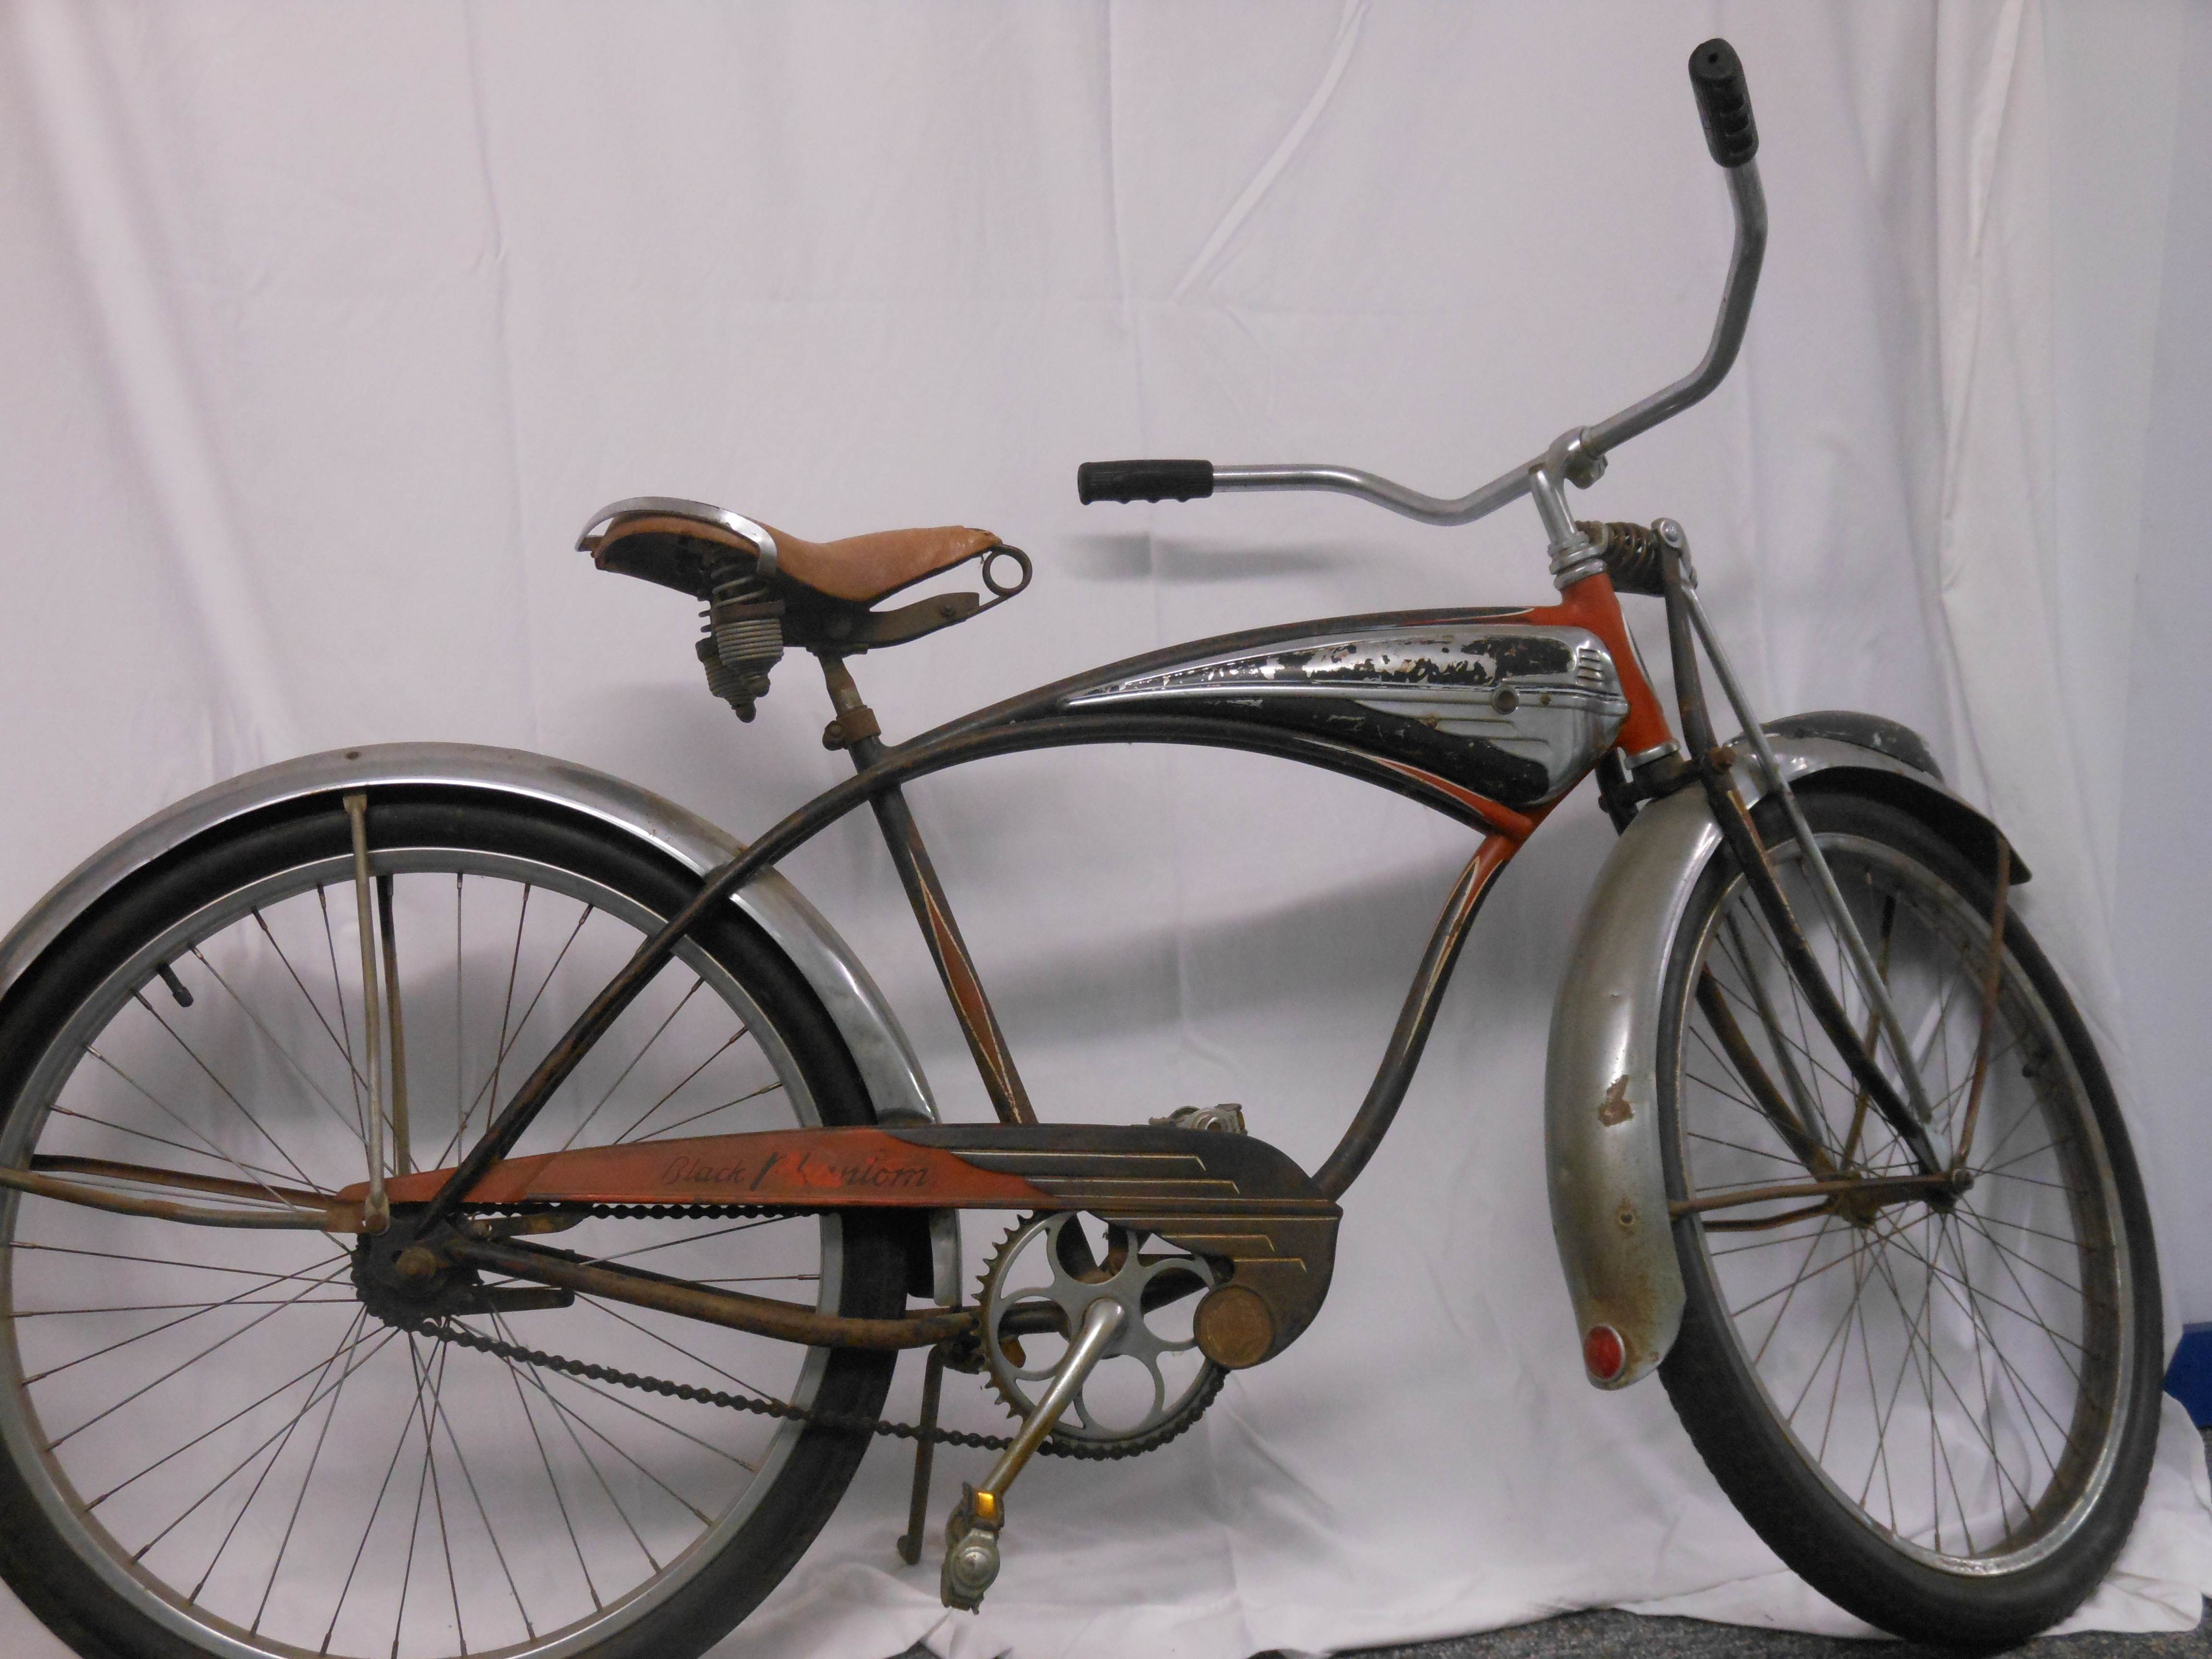 """40700a79892 1959 Schwinn Hornet is """"spitfire red"""" missing the """"luggage carrier"""" and  light on front fender. According to the Schwinn catalog this bike would  have ..."""